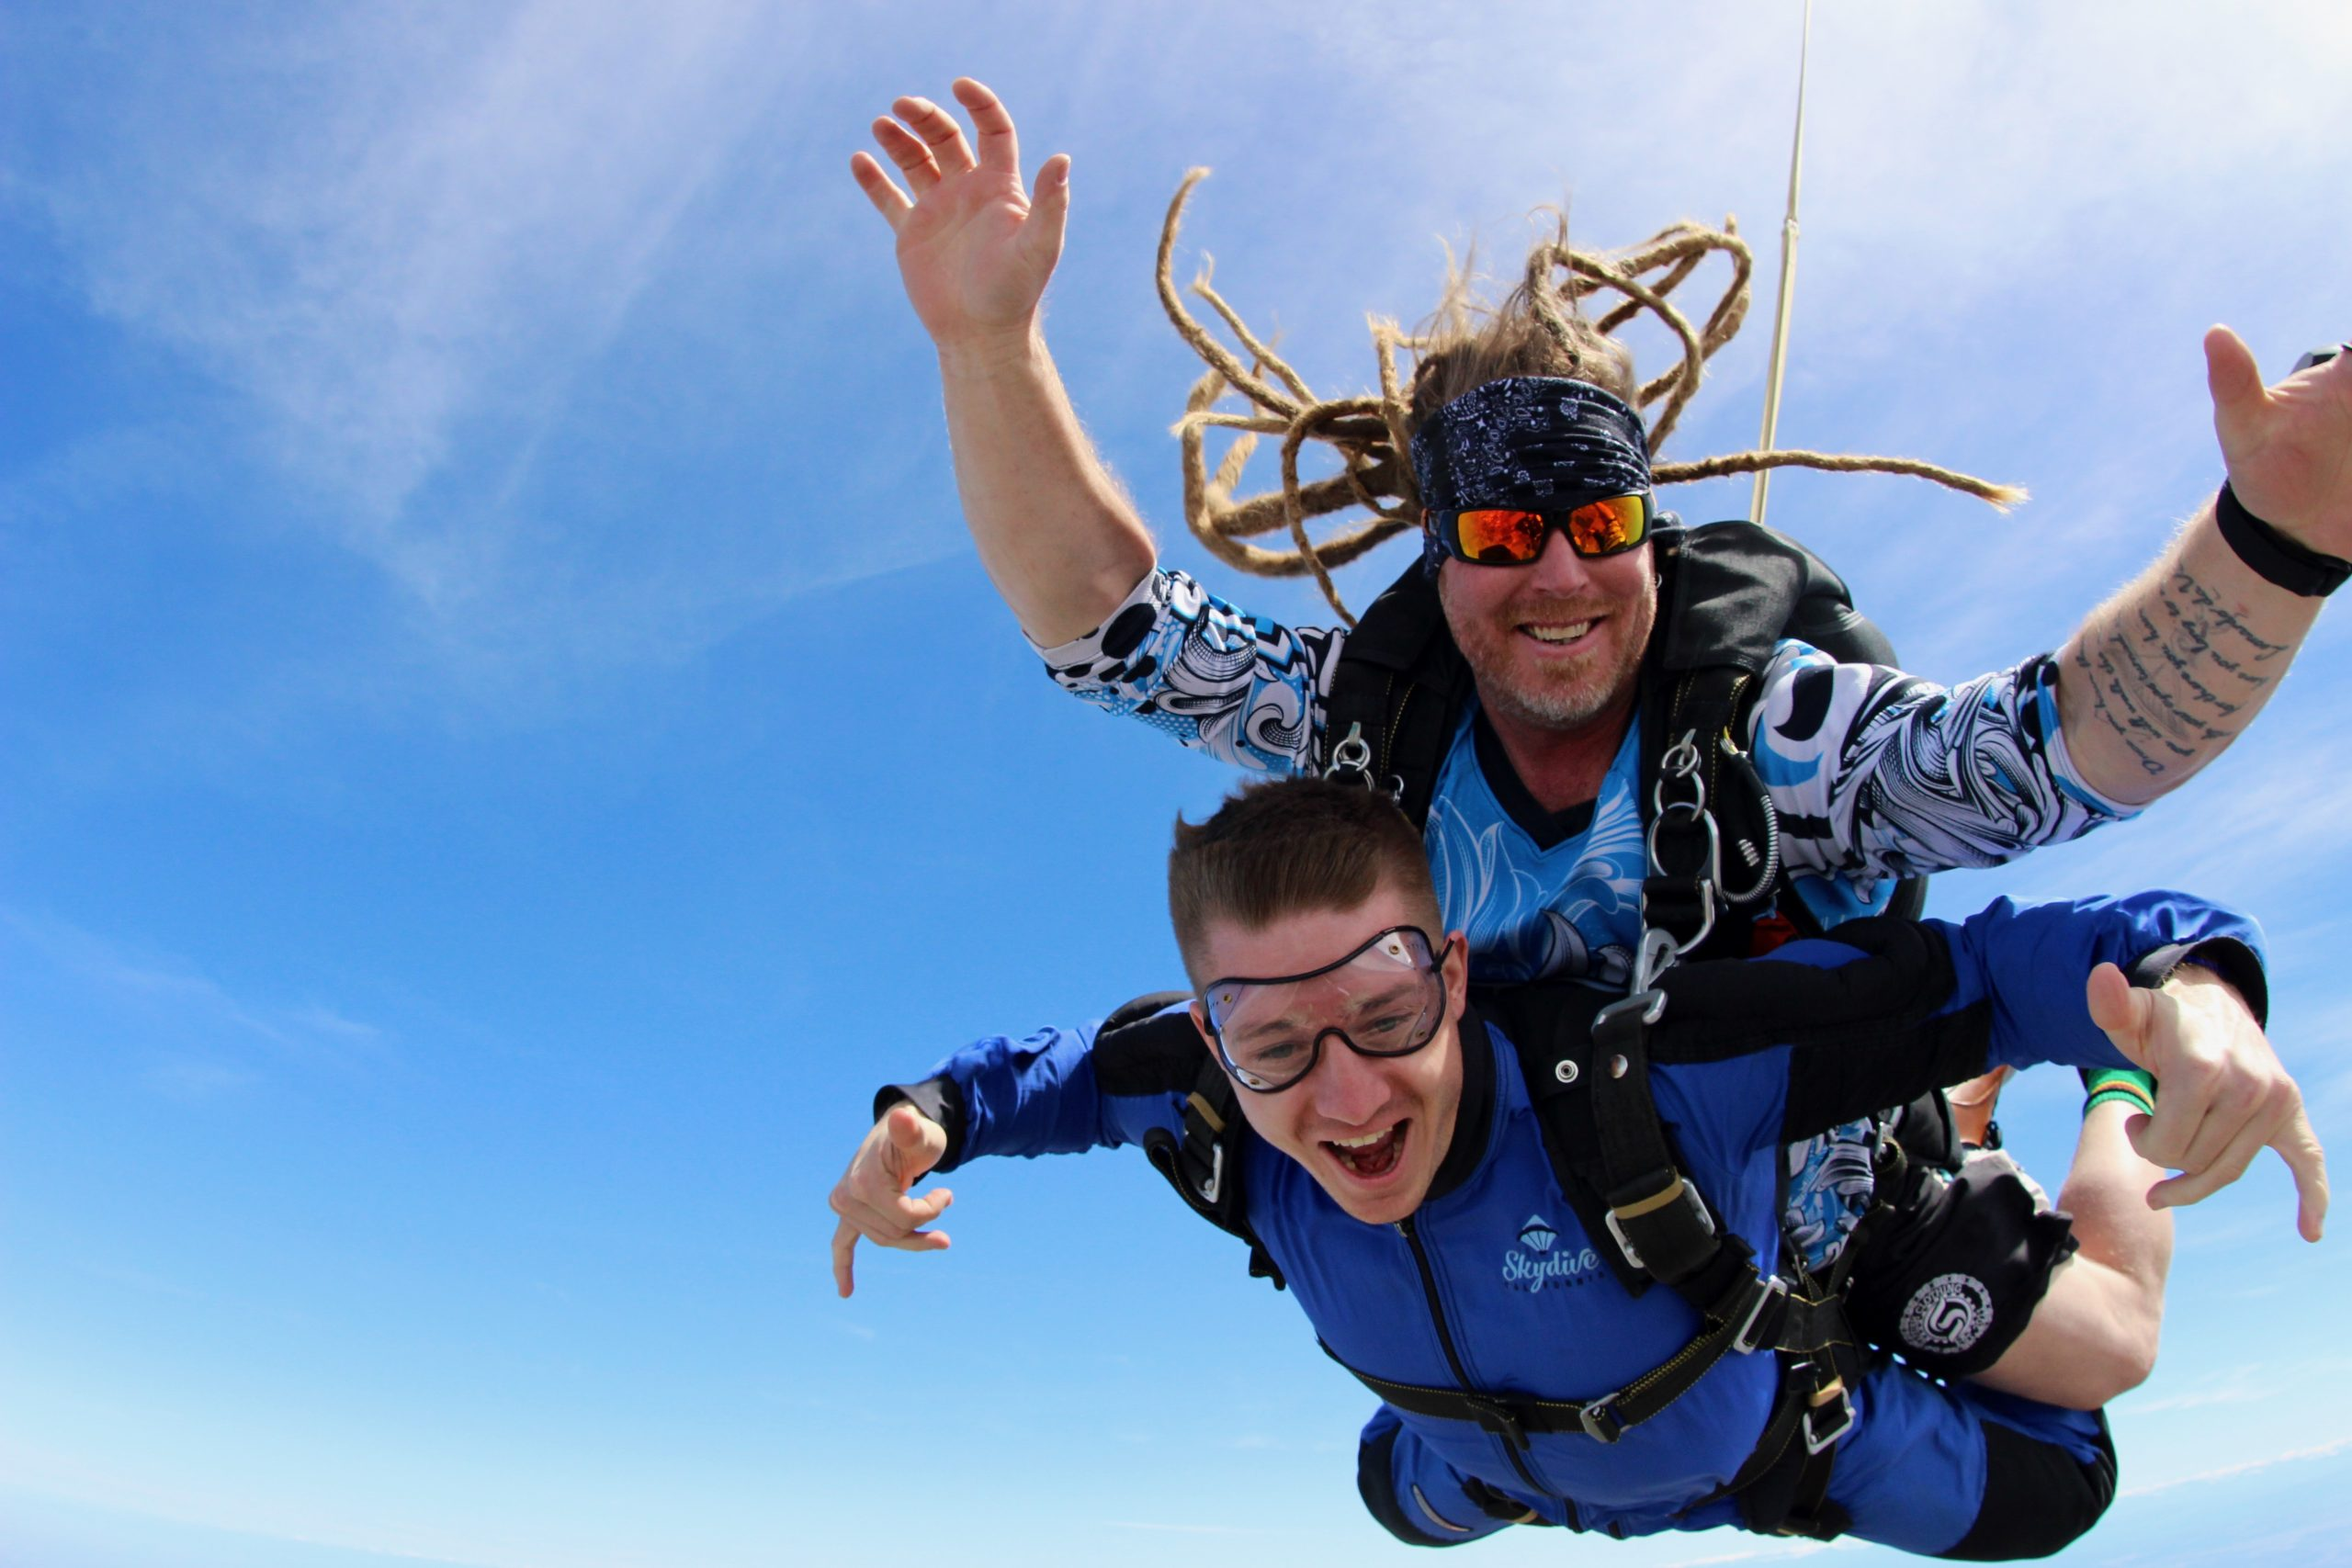 best weather for skydiving skydiving experience description skydive california